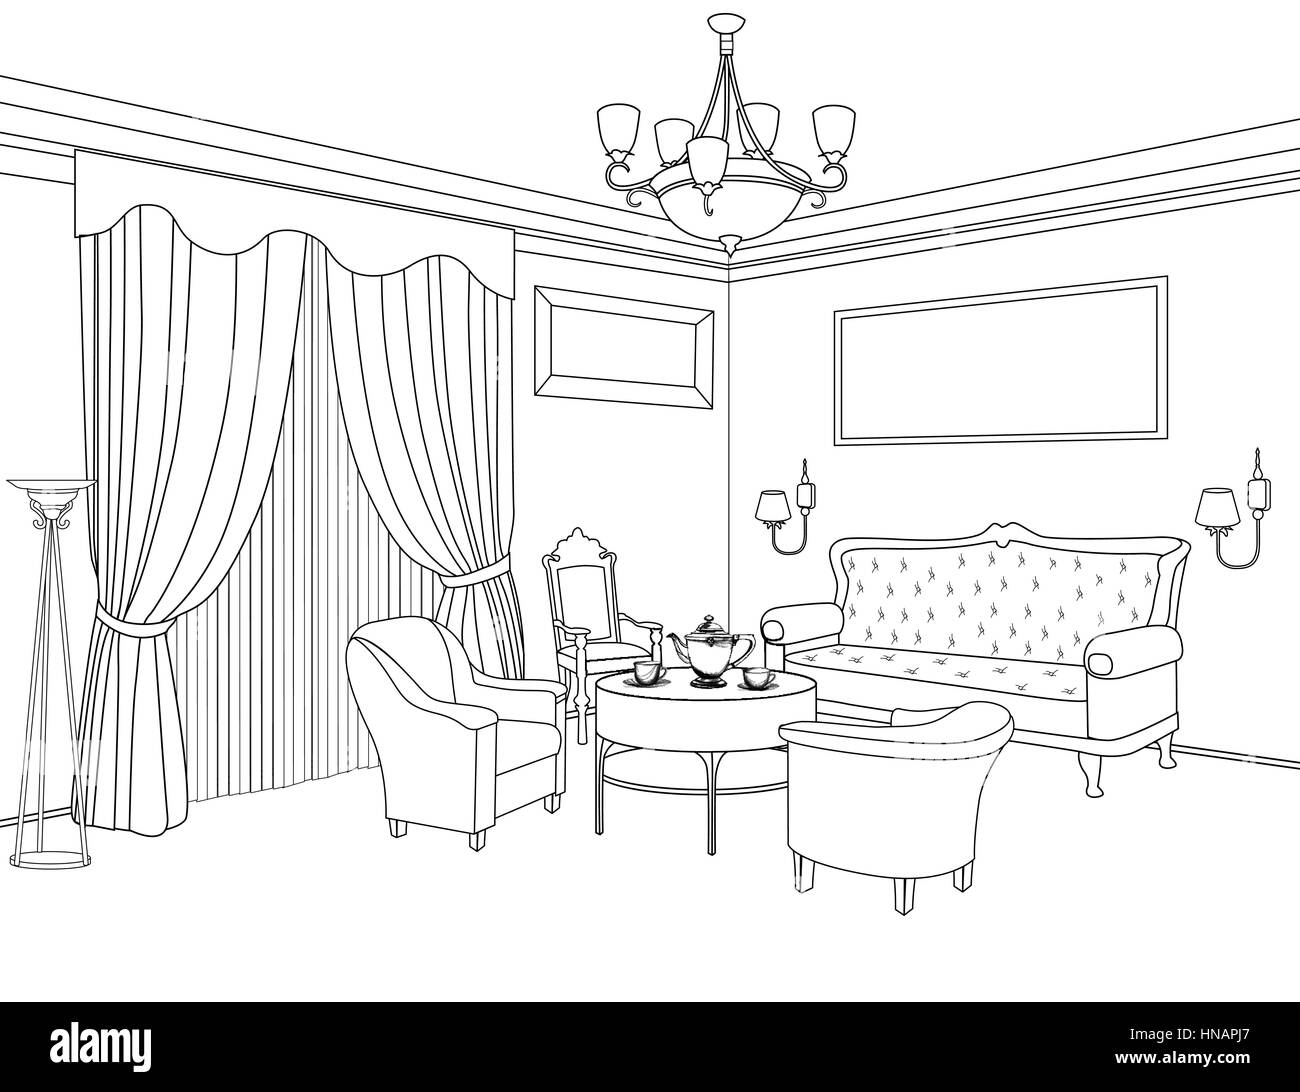 Interior outline sketch furniture blueprint architectural design furniture blueprint architectural design living room malvernweather Images